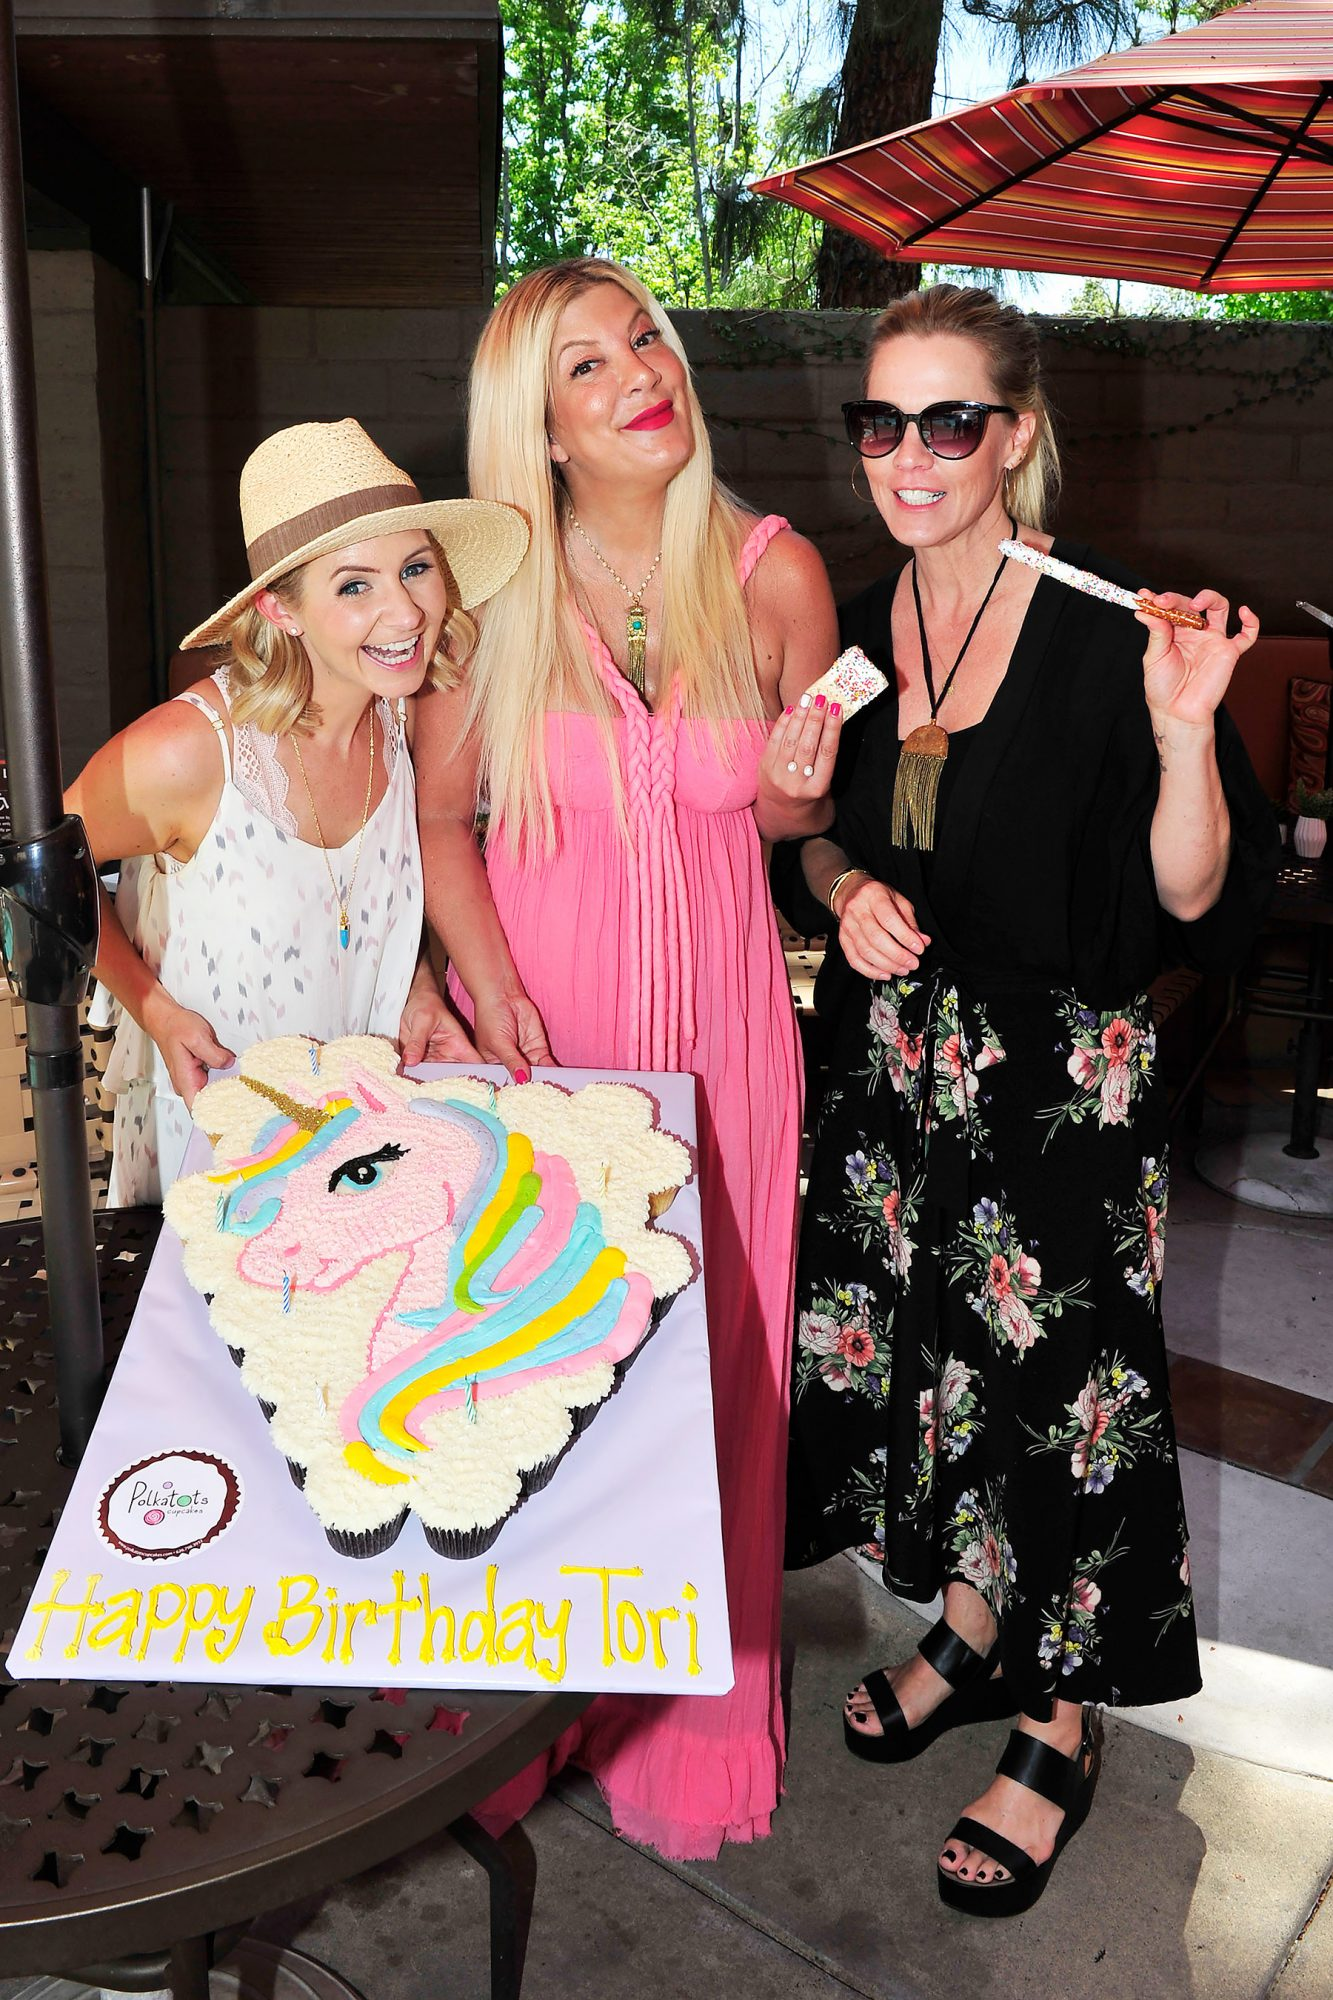 Exclusive - The Millennial Mamas Throw Tori Spelling a Birthday Party